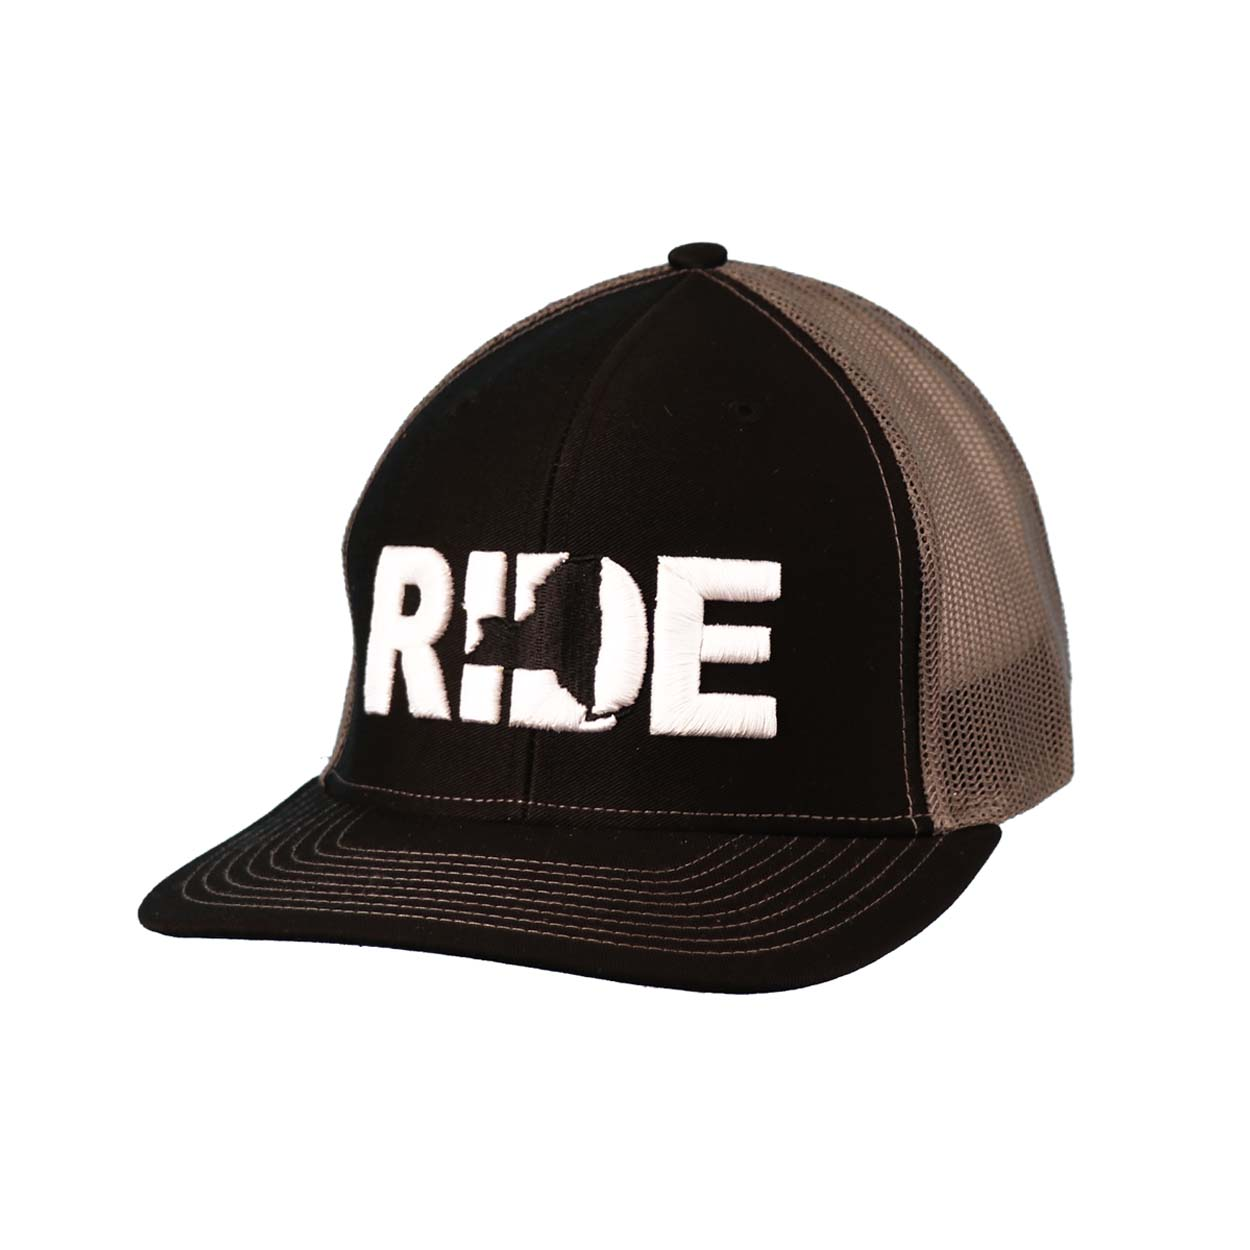 Ride New York Classic Embroidered Snapback Trucker Hat Black/White